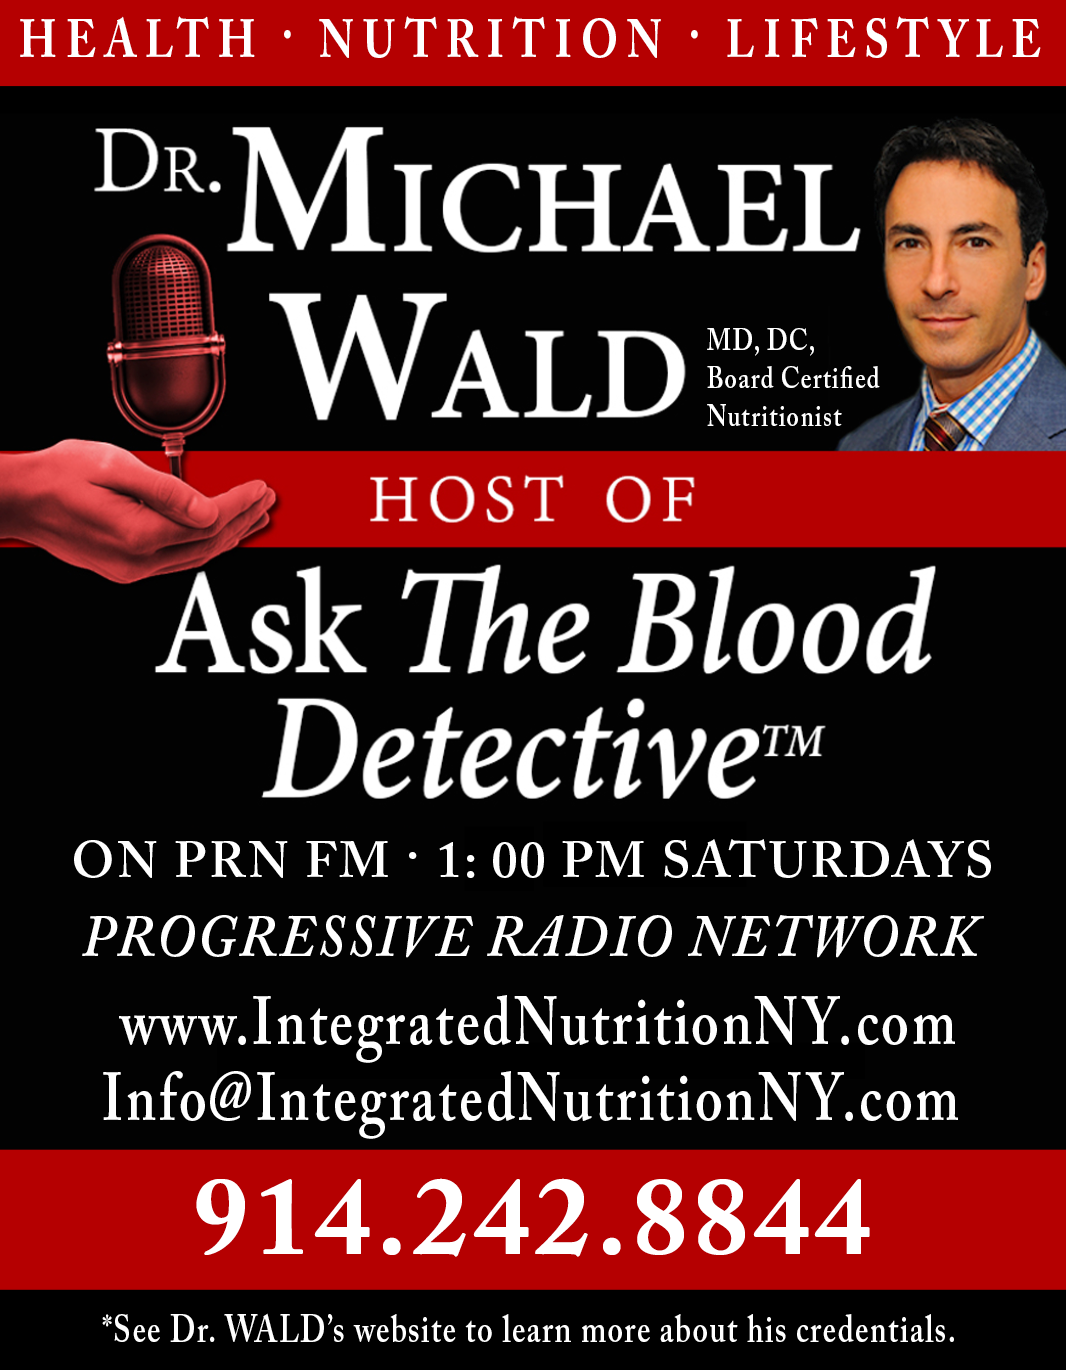 SCHEDULE A FREE 15 MINUTE APPOINTMENT WITH DR. WALD THROUGH OCTOBER 5TH, 2016 - just click here and we will contact you:    www.info@IntegratedNutritionNY.com